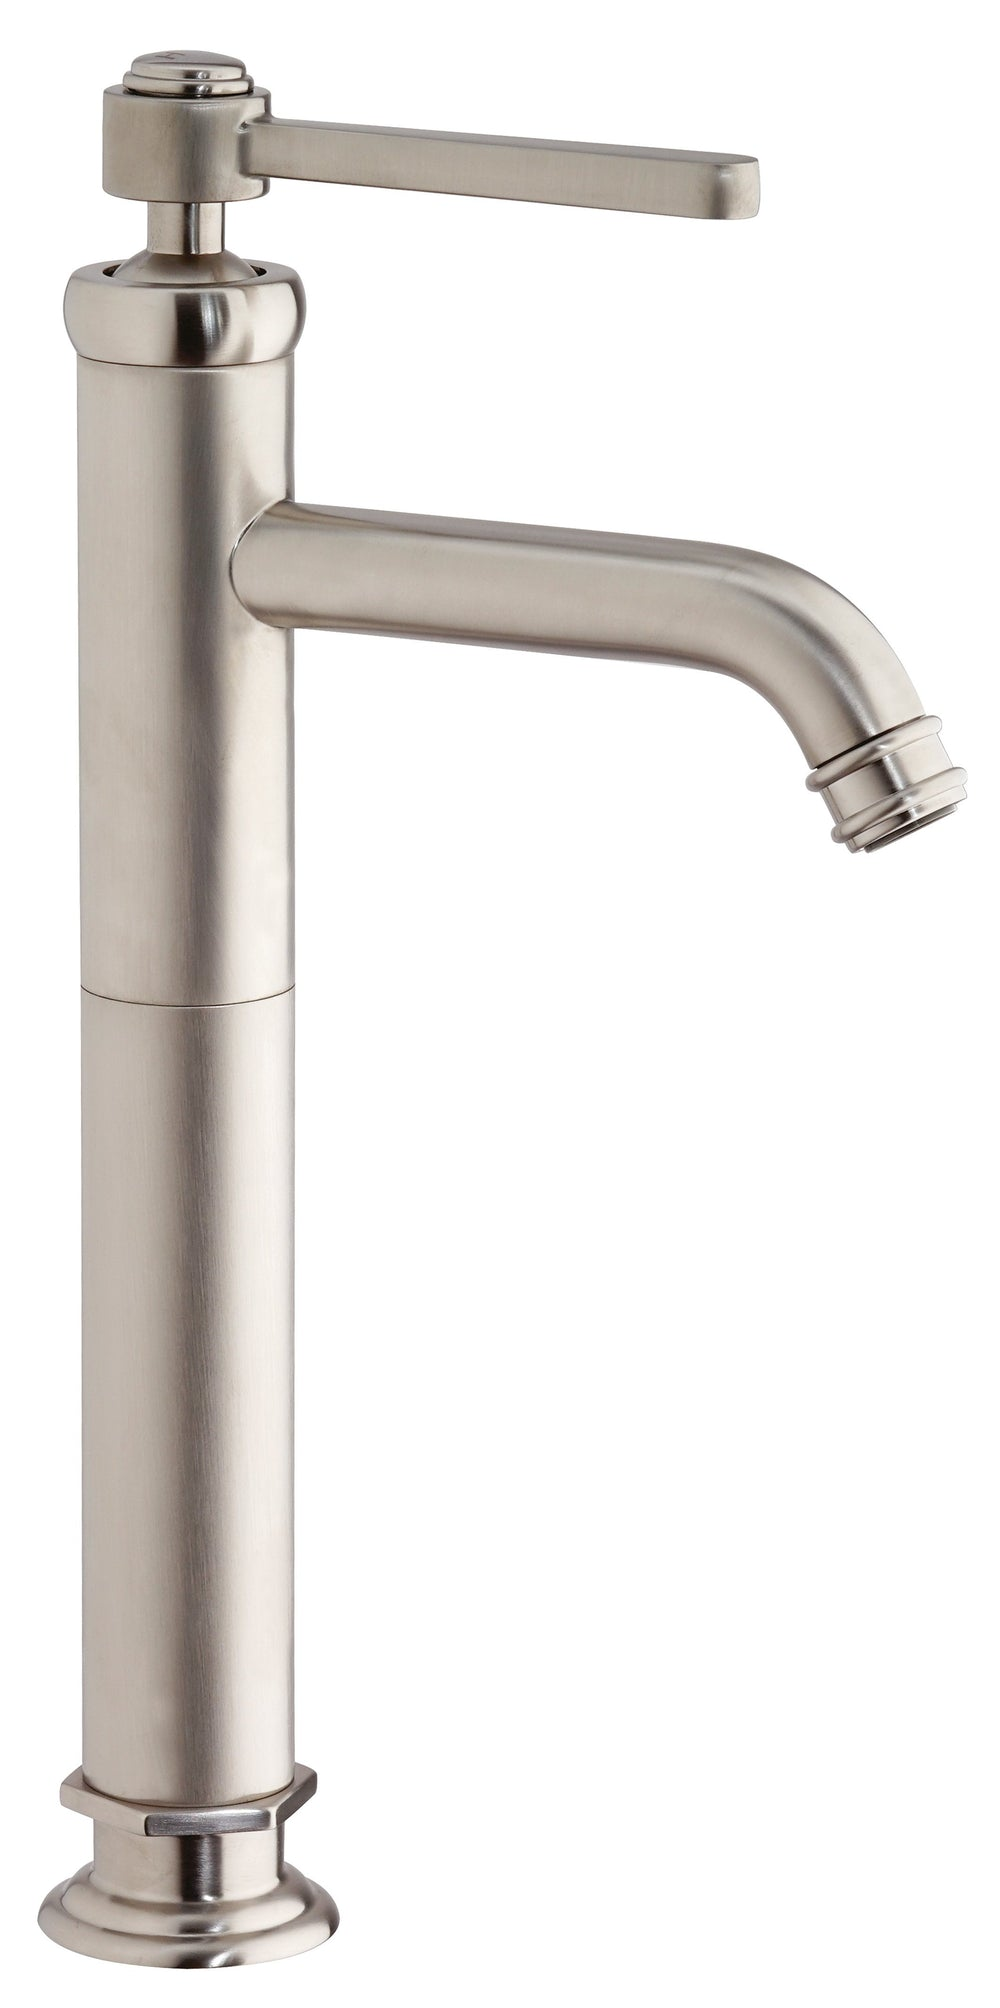 Latoscana Firenze Tall Single Handle Lavatory Vessel In Brushed Nickel Finish Bathroom Faucet Latoscana